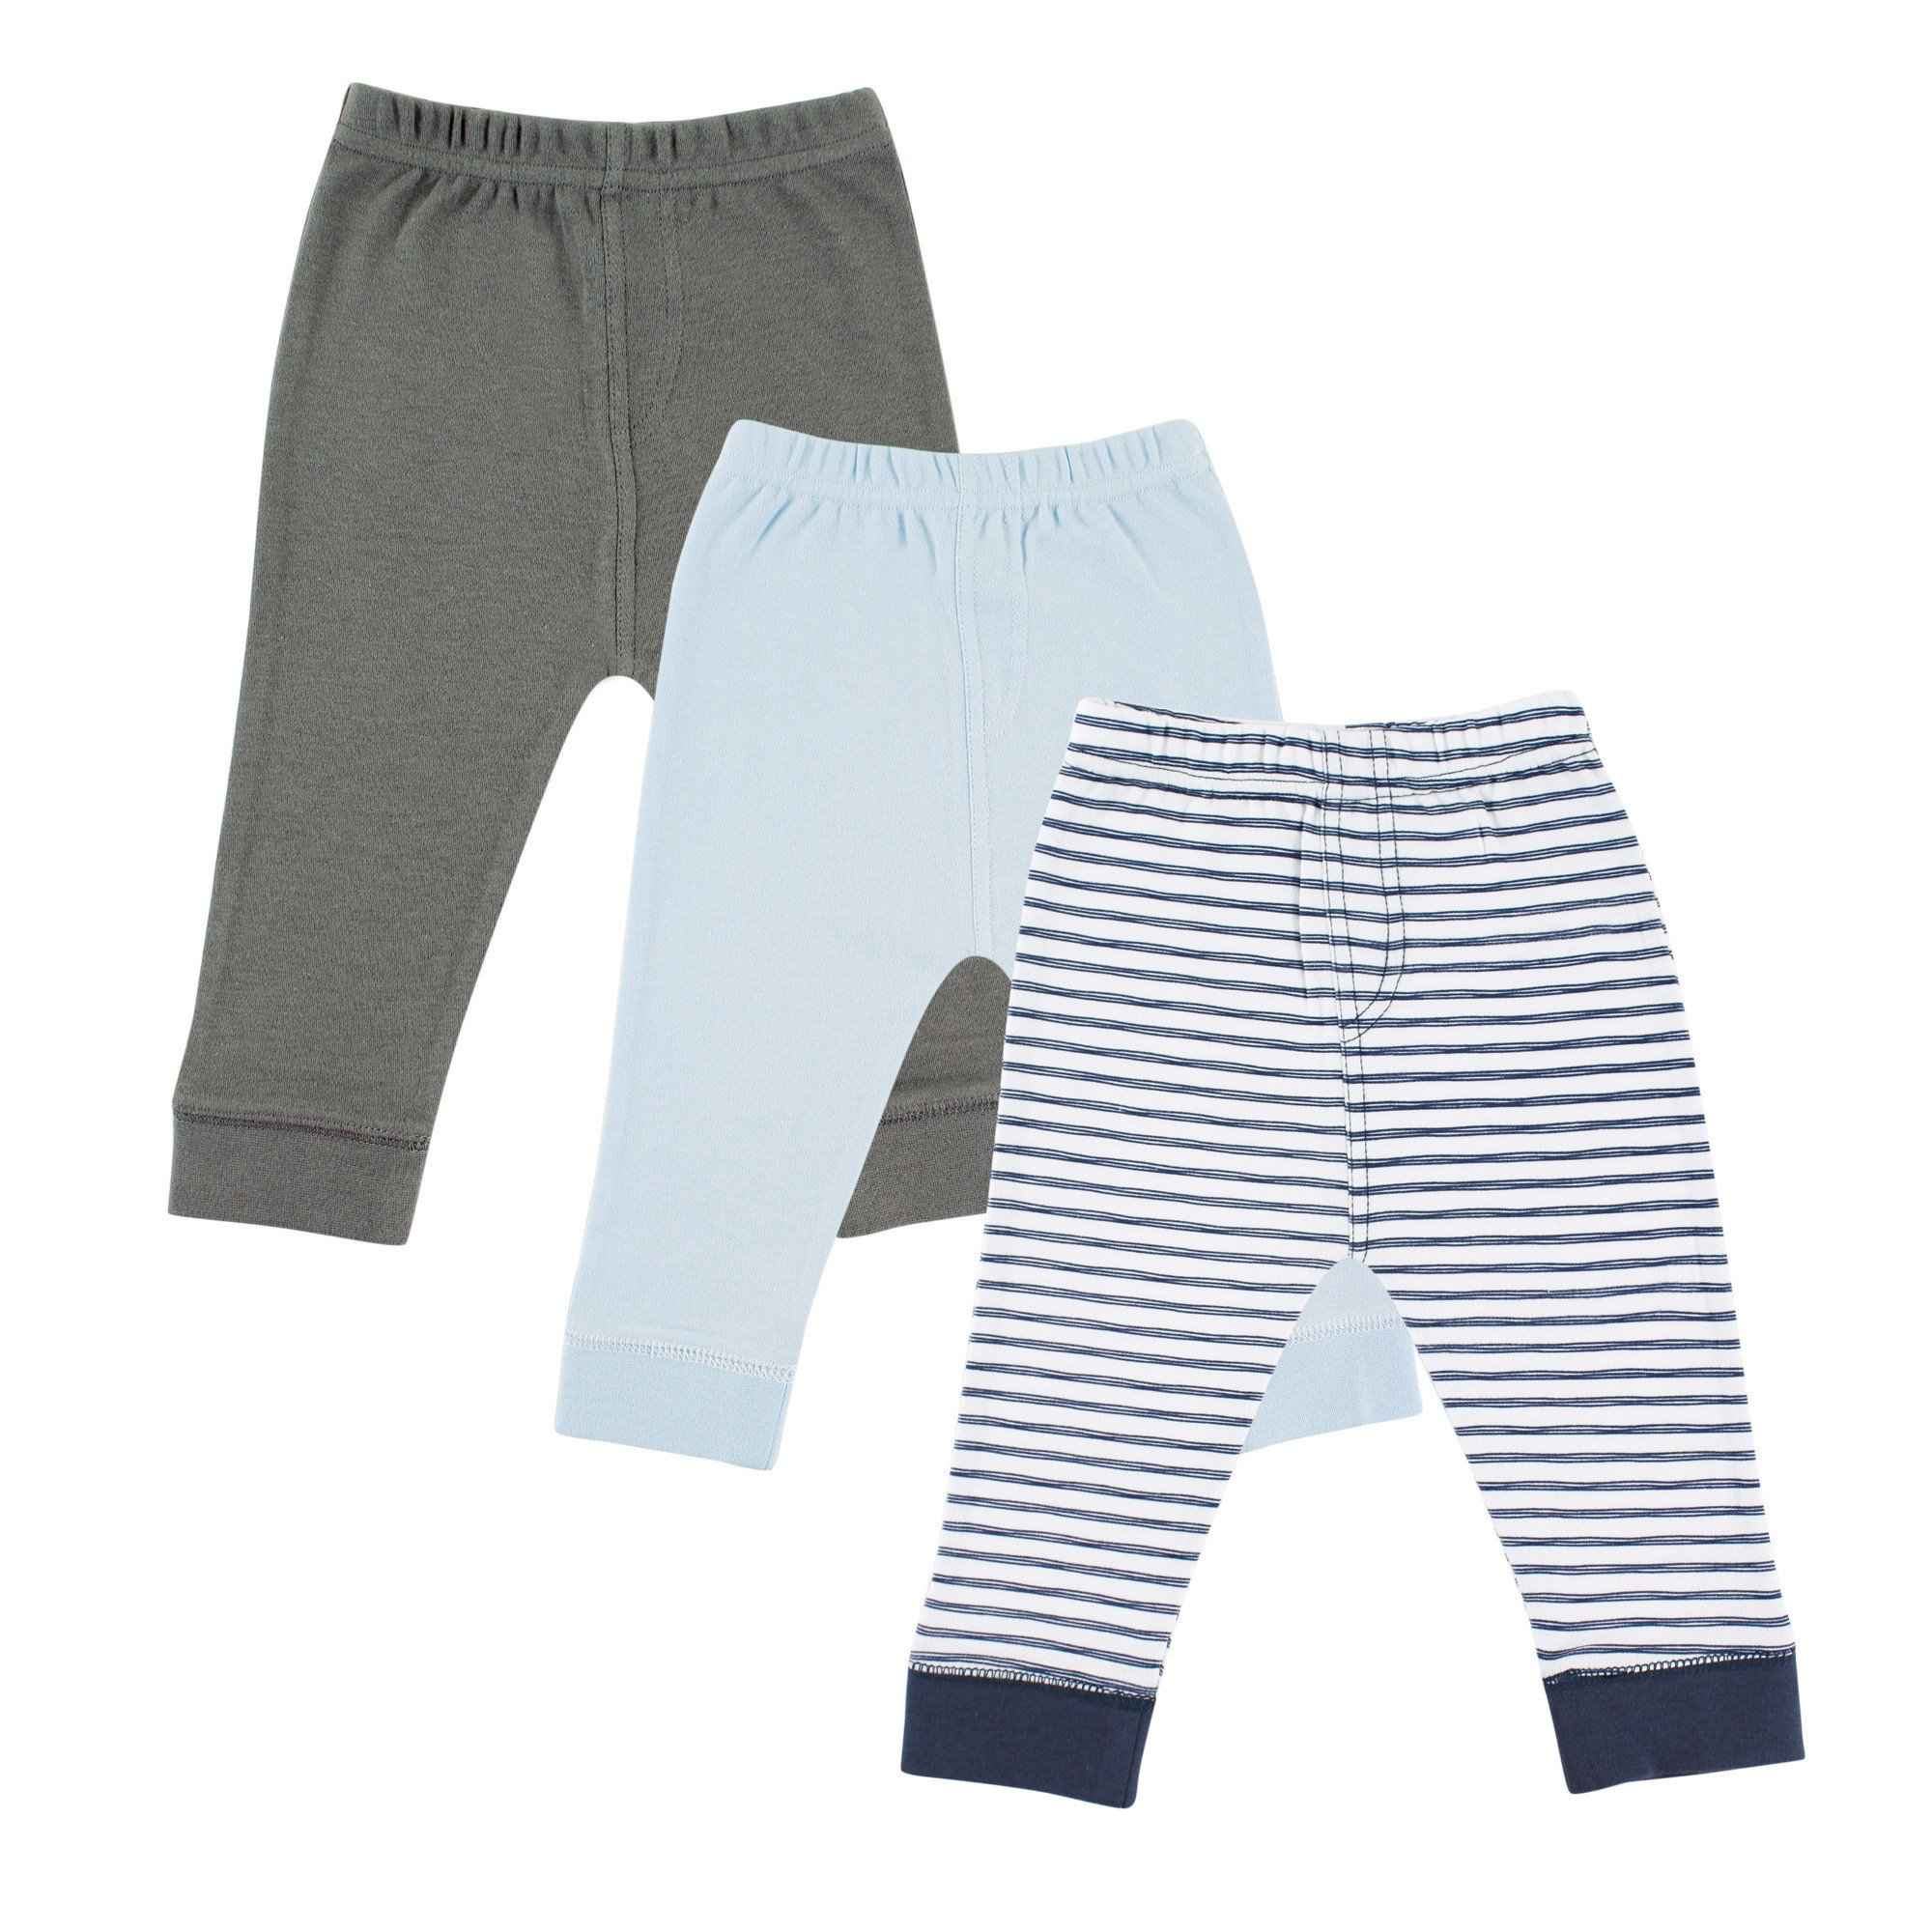 Luvable Friends Unisex-Baby Baby Cotton Pants 4 Pack